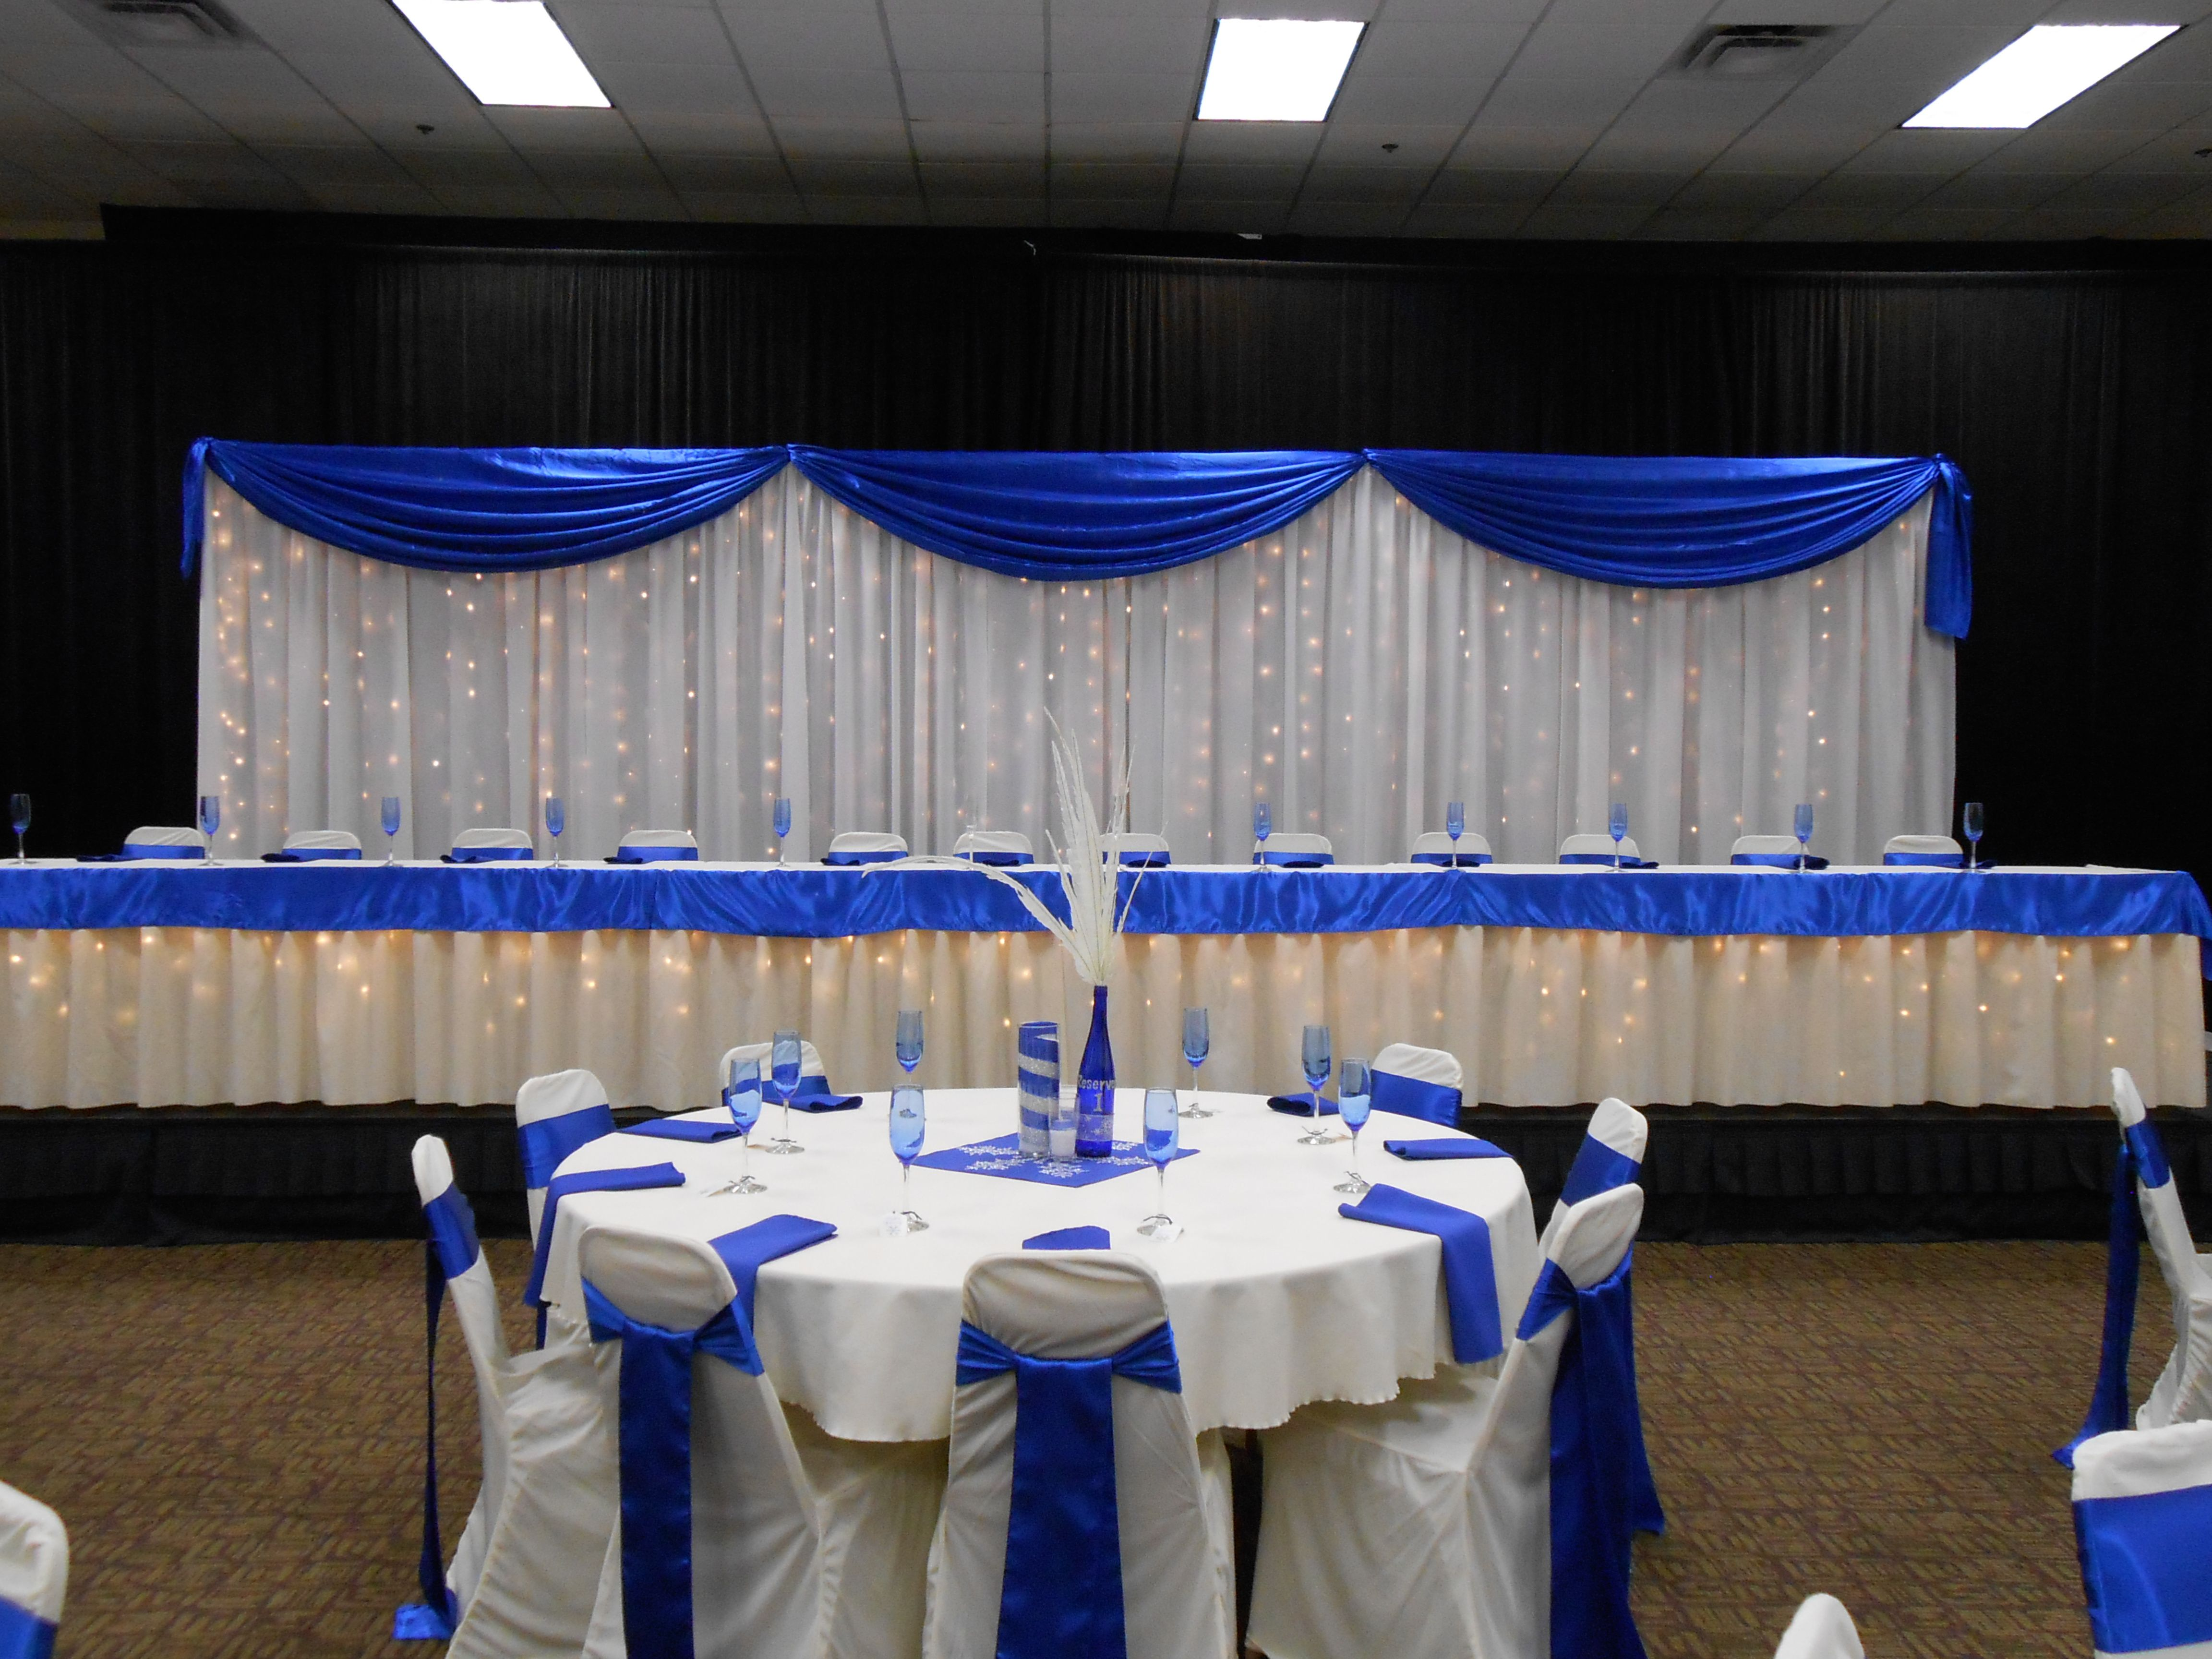 White D Ry Backdrop Royal Blue Daccent